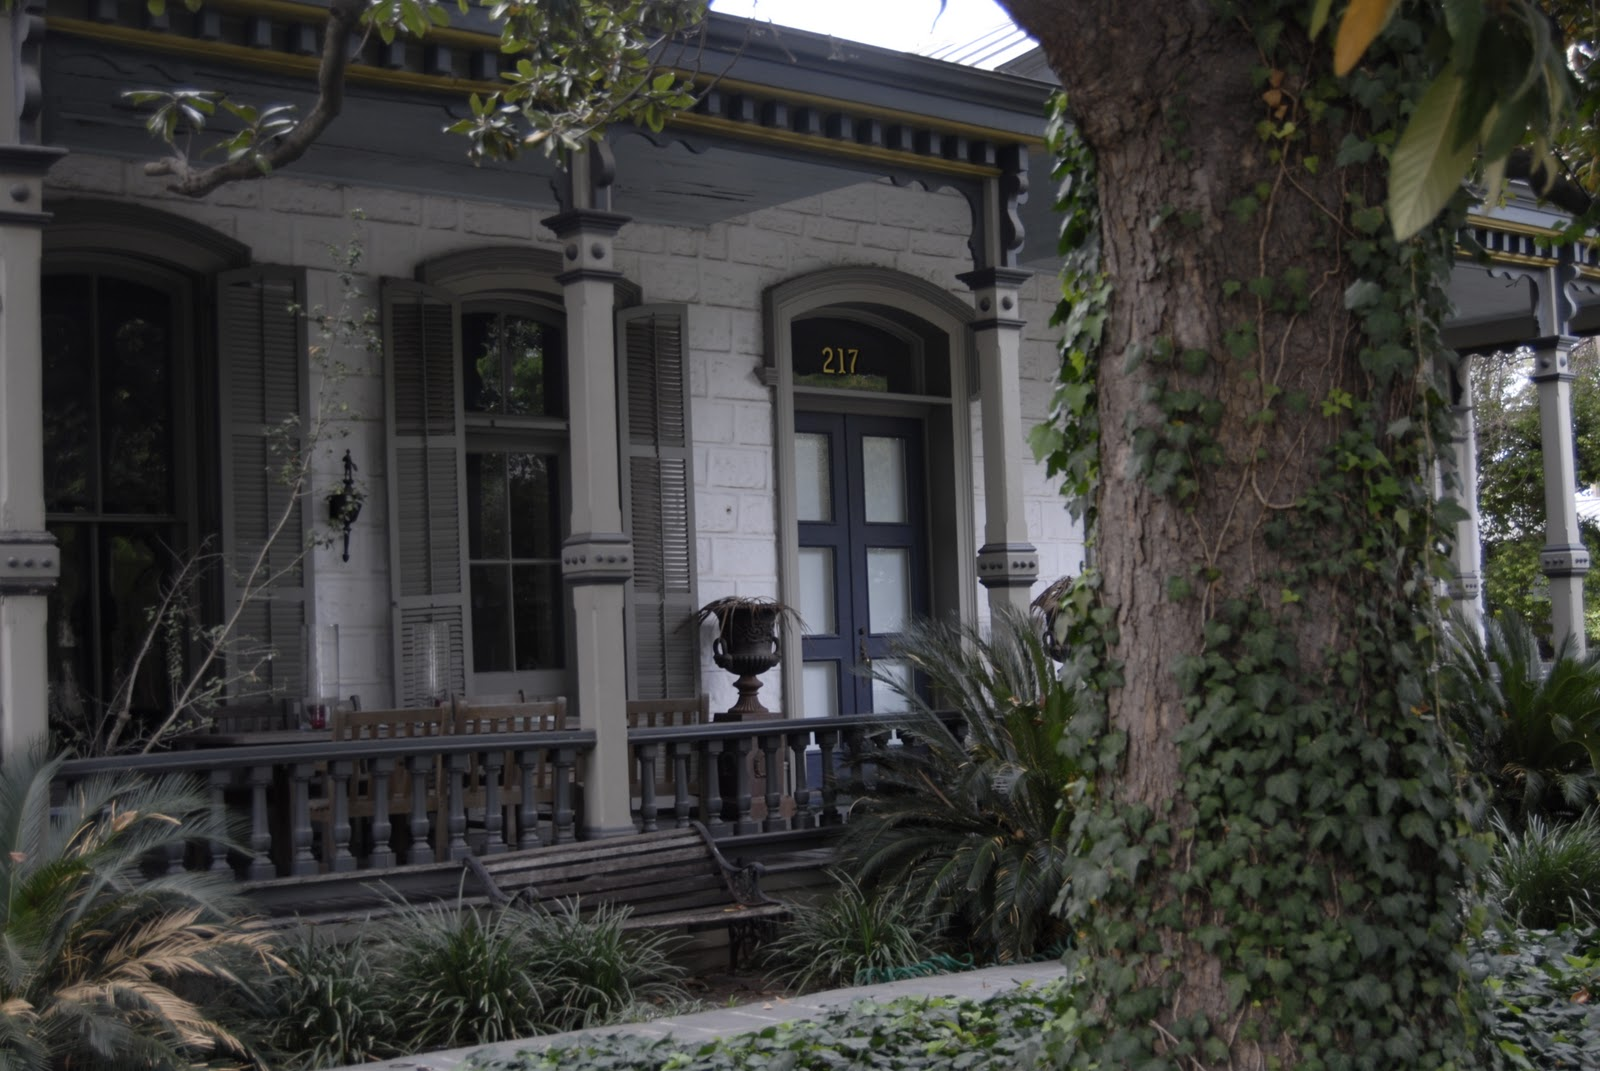 Savoring Servant Front Porches On Old Homes